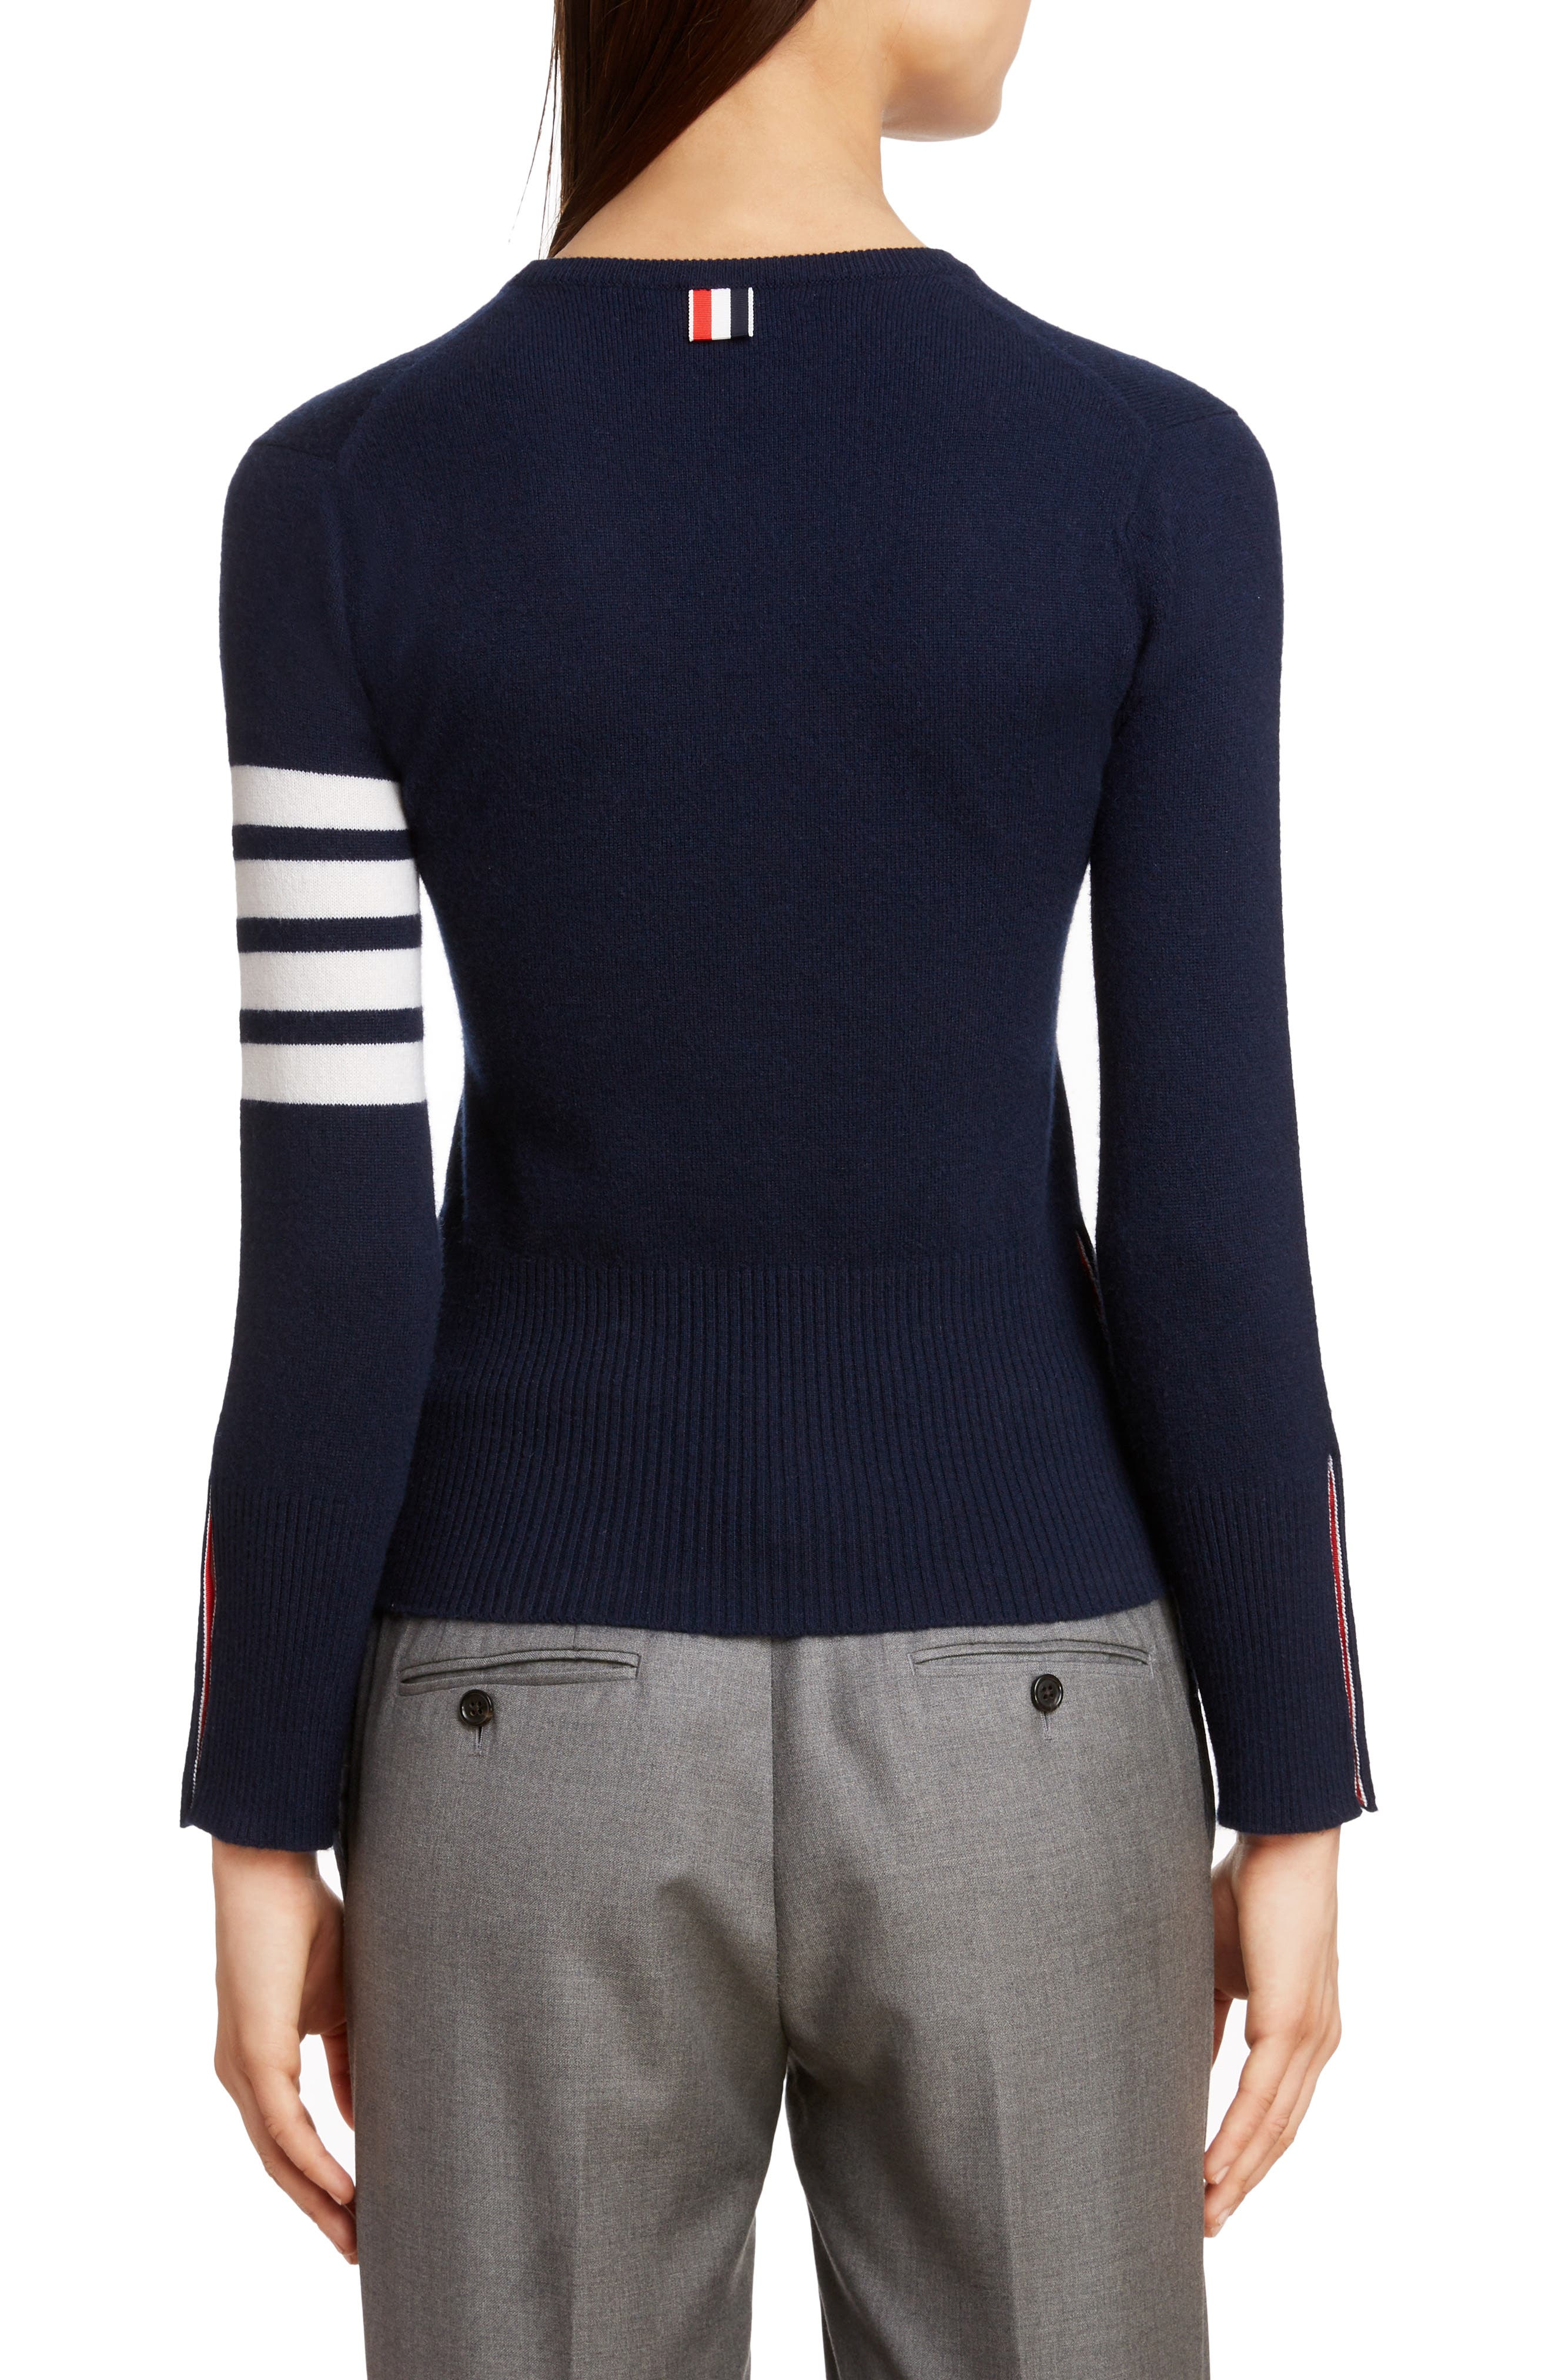 THOM BROWNE, Classic Crewneck Cashmere Sweater, Alternate thumbnail 2, color, NAVY